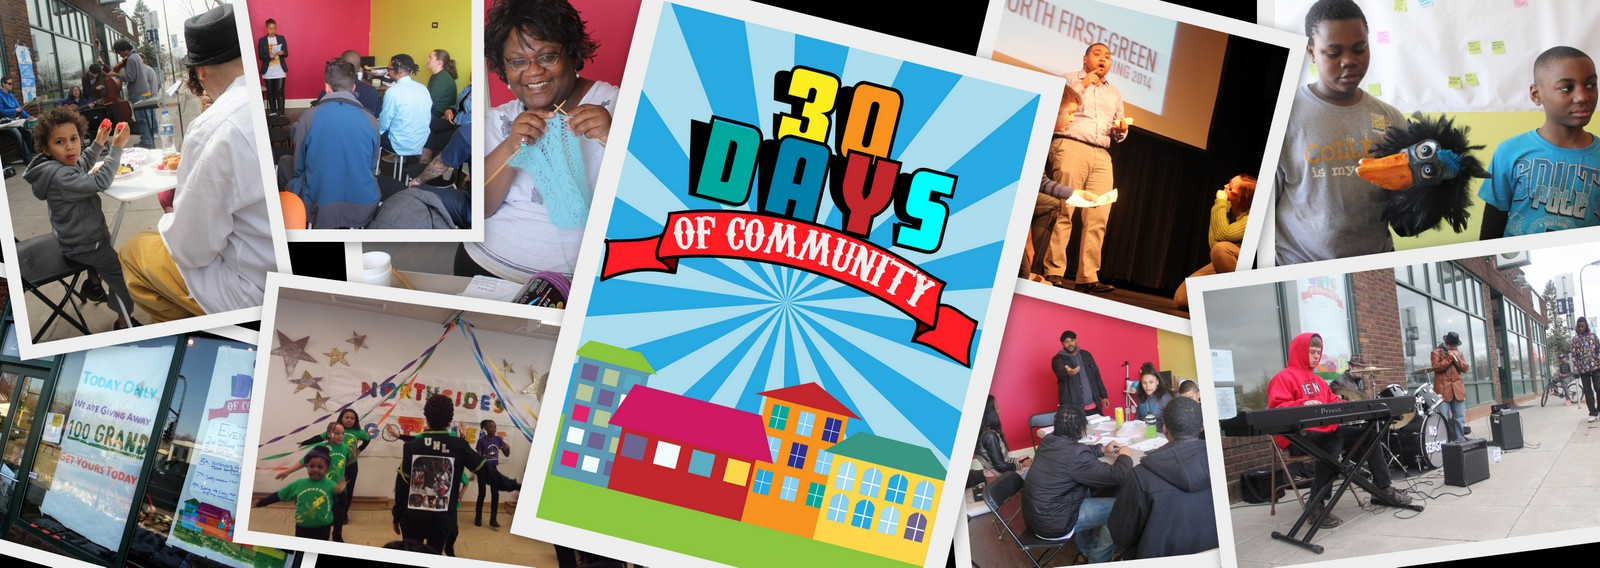 Submit your Event for 30 Days of Community